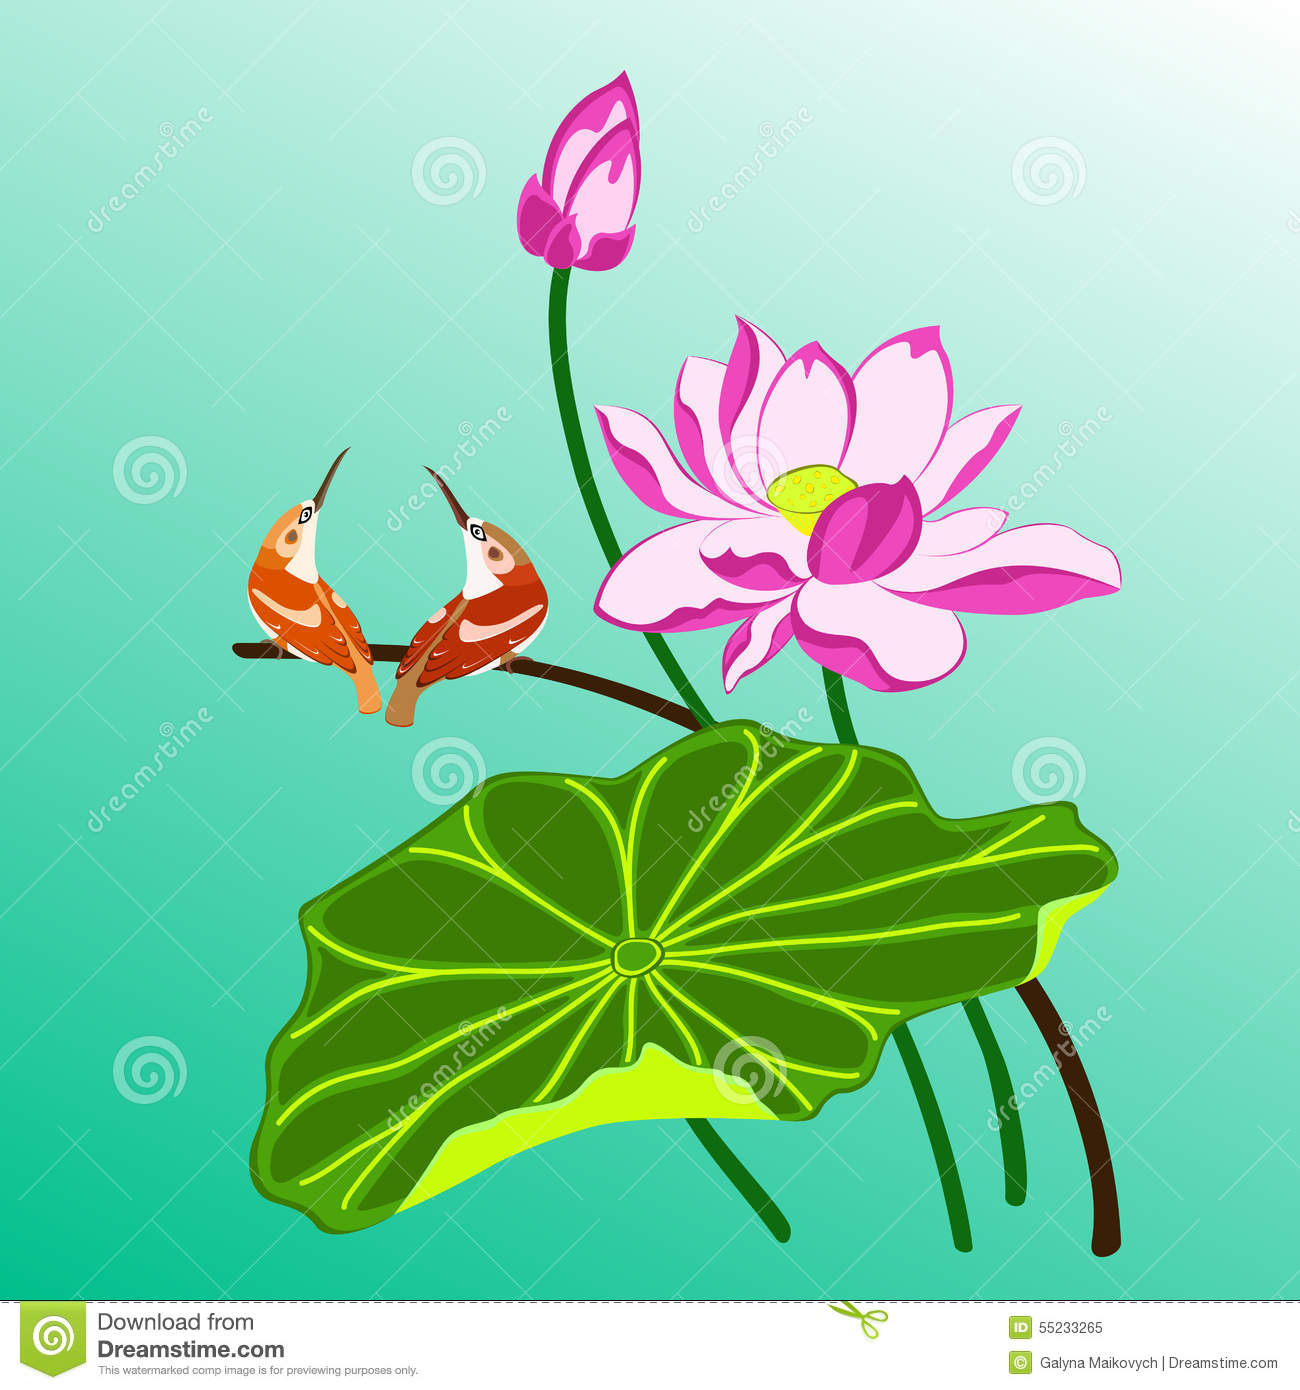 Birds And Lotus Stock Vector. Illustration Of Blooming